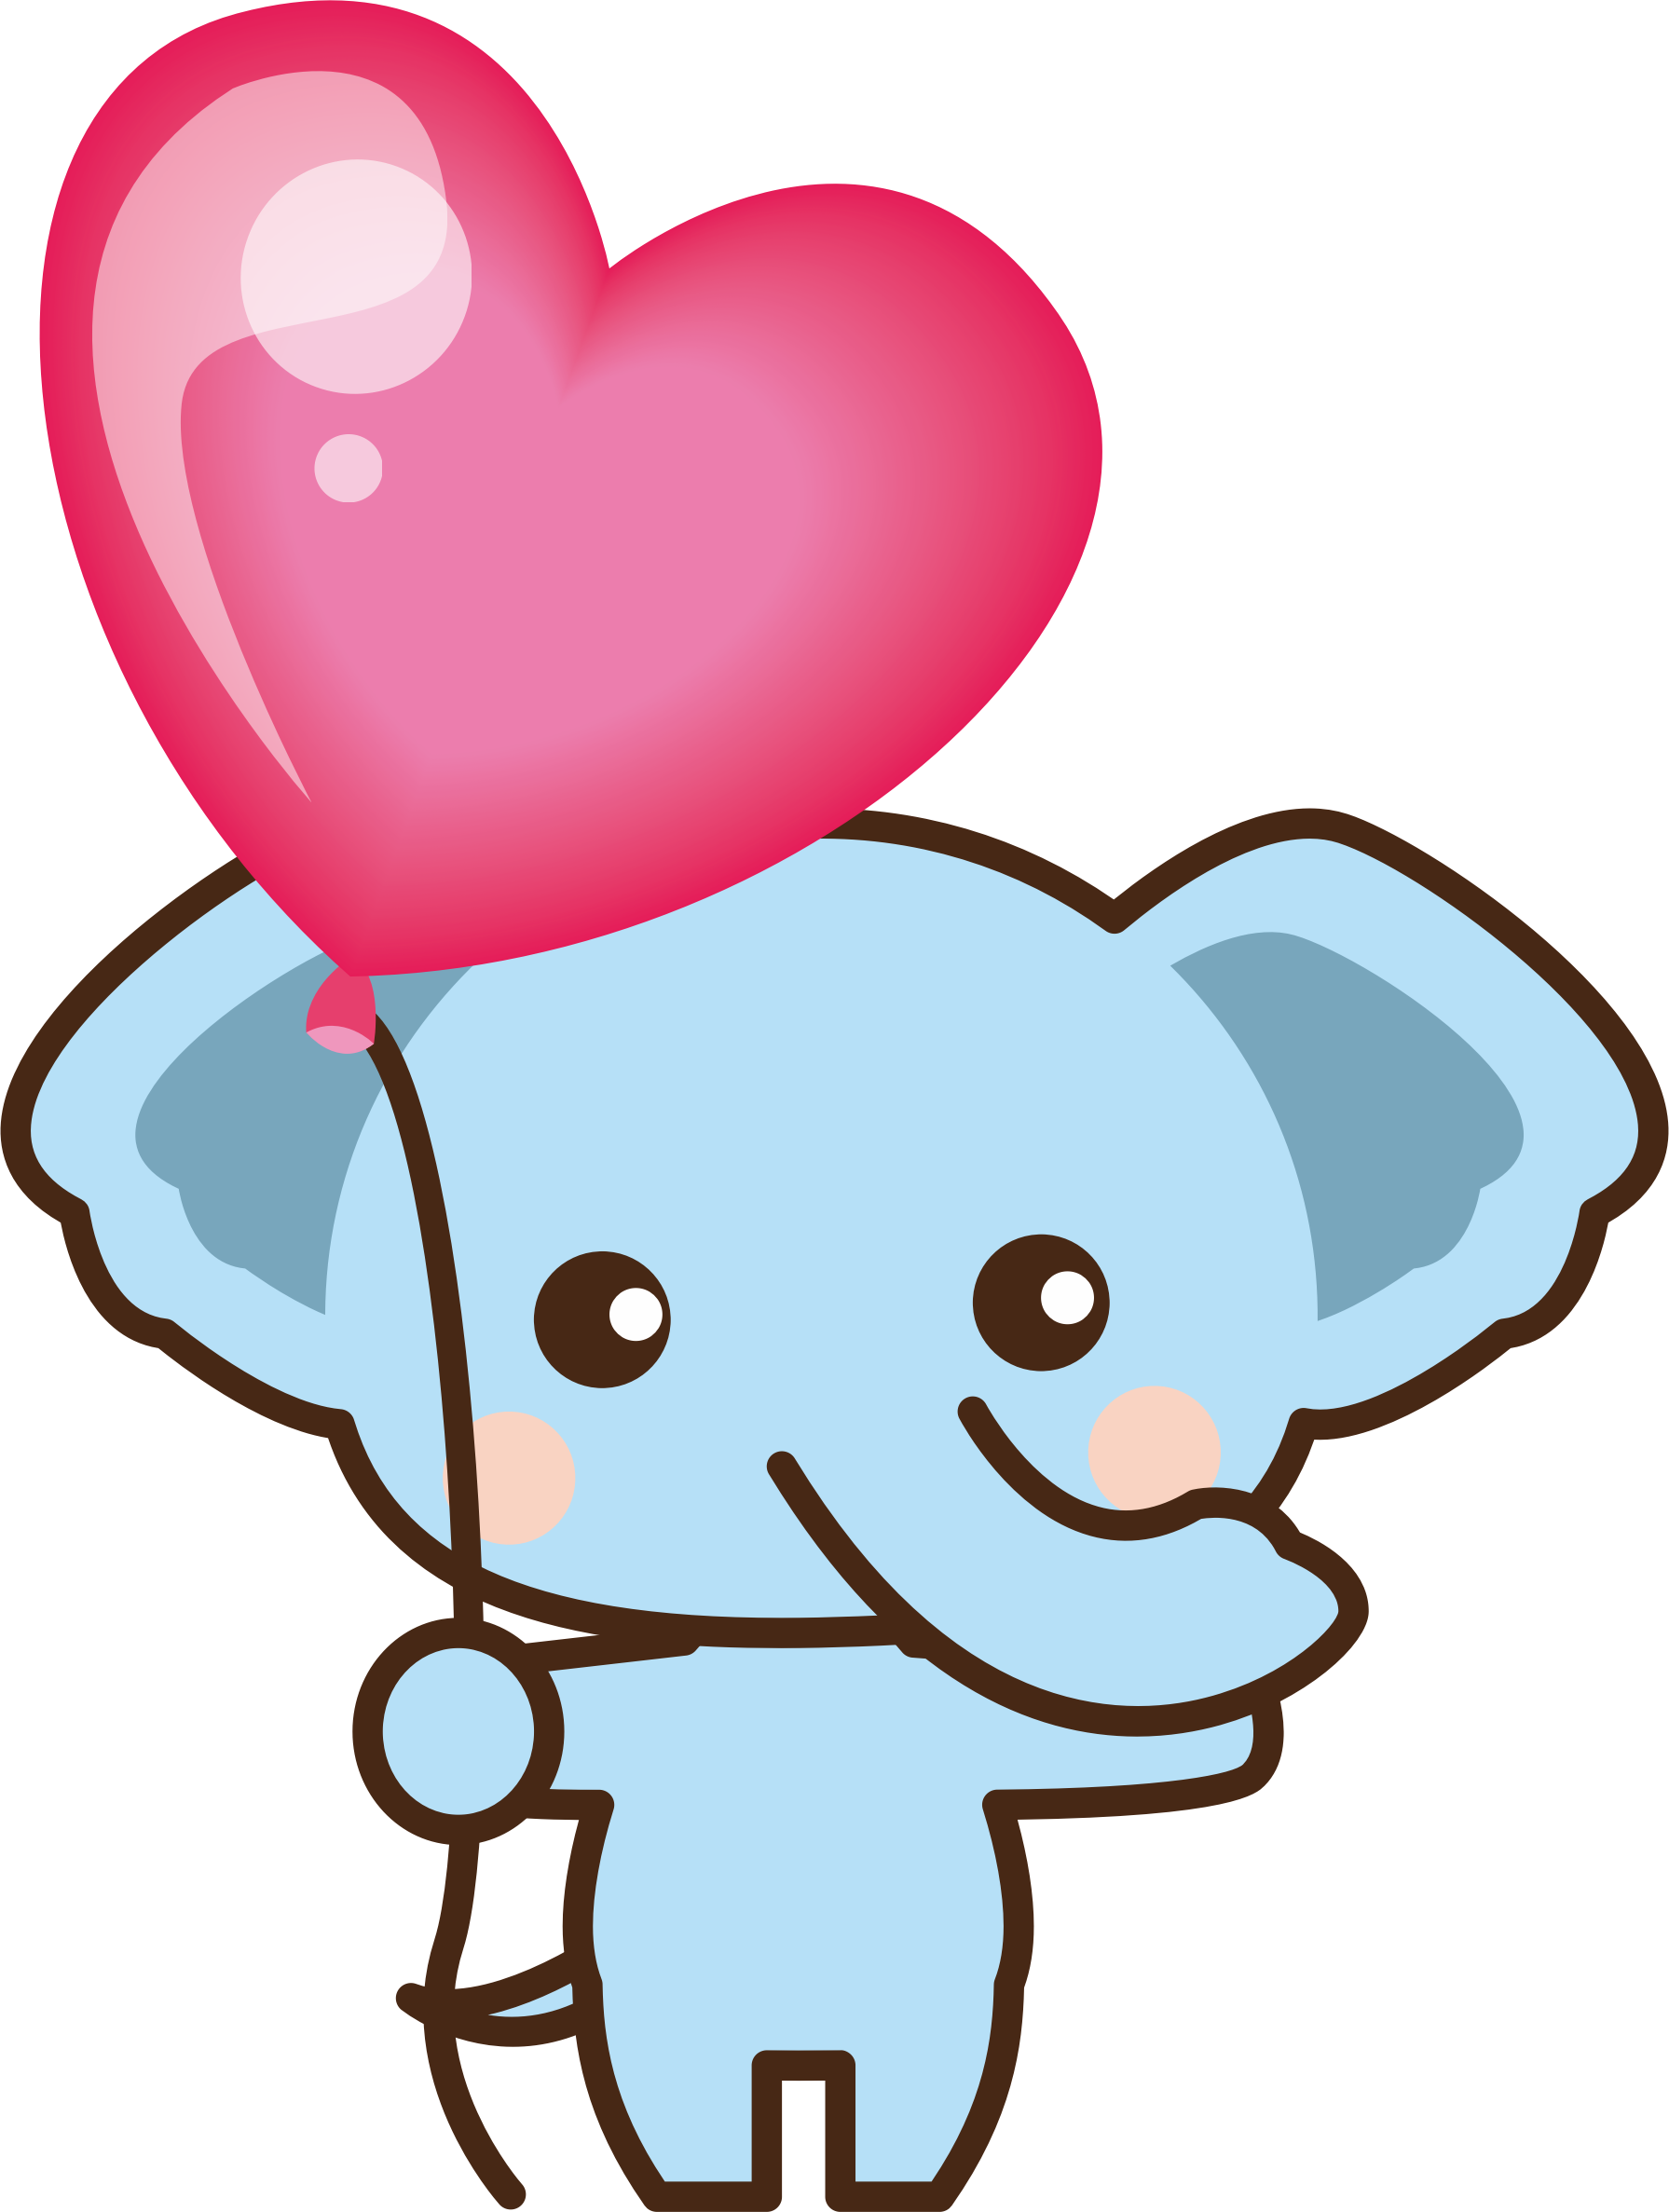 Heart clipart elephant. With balloon big image